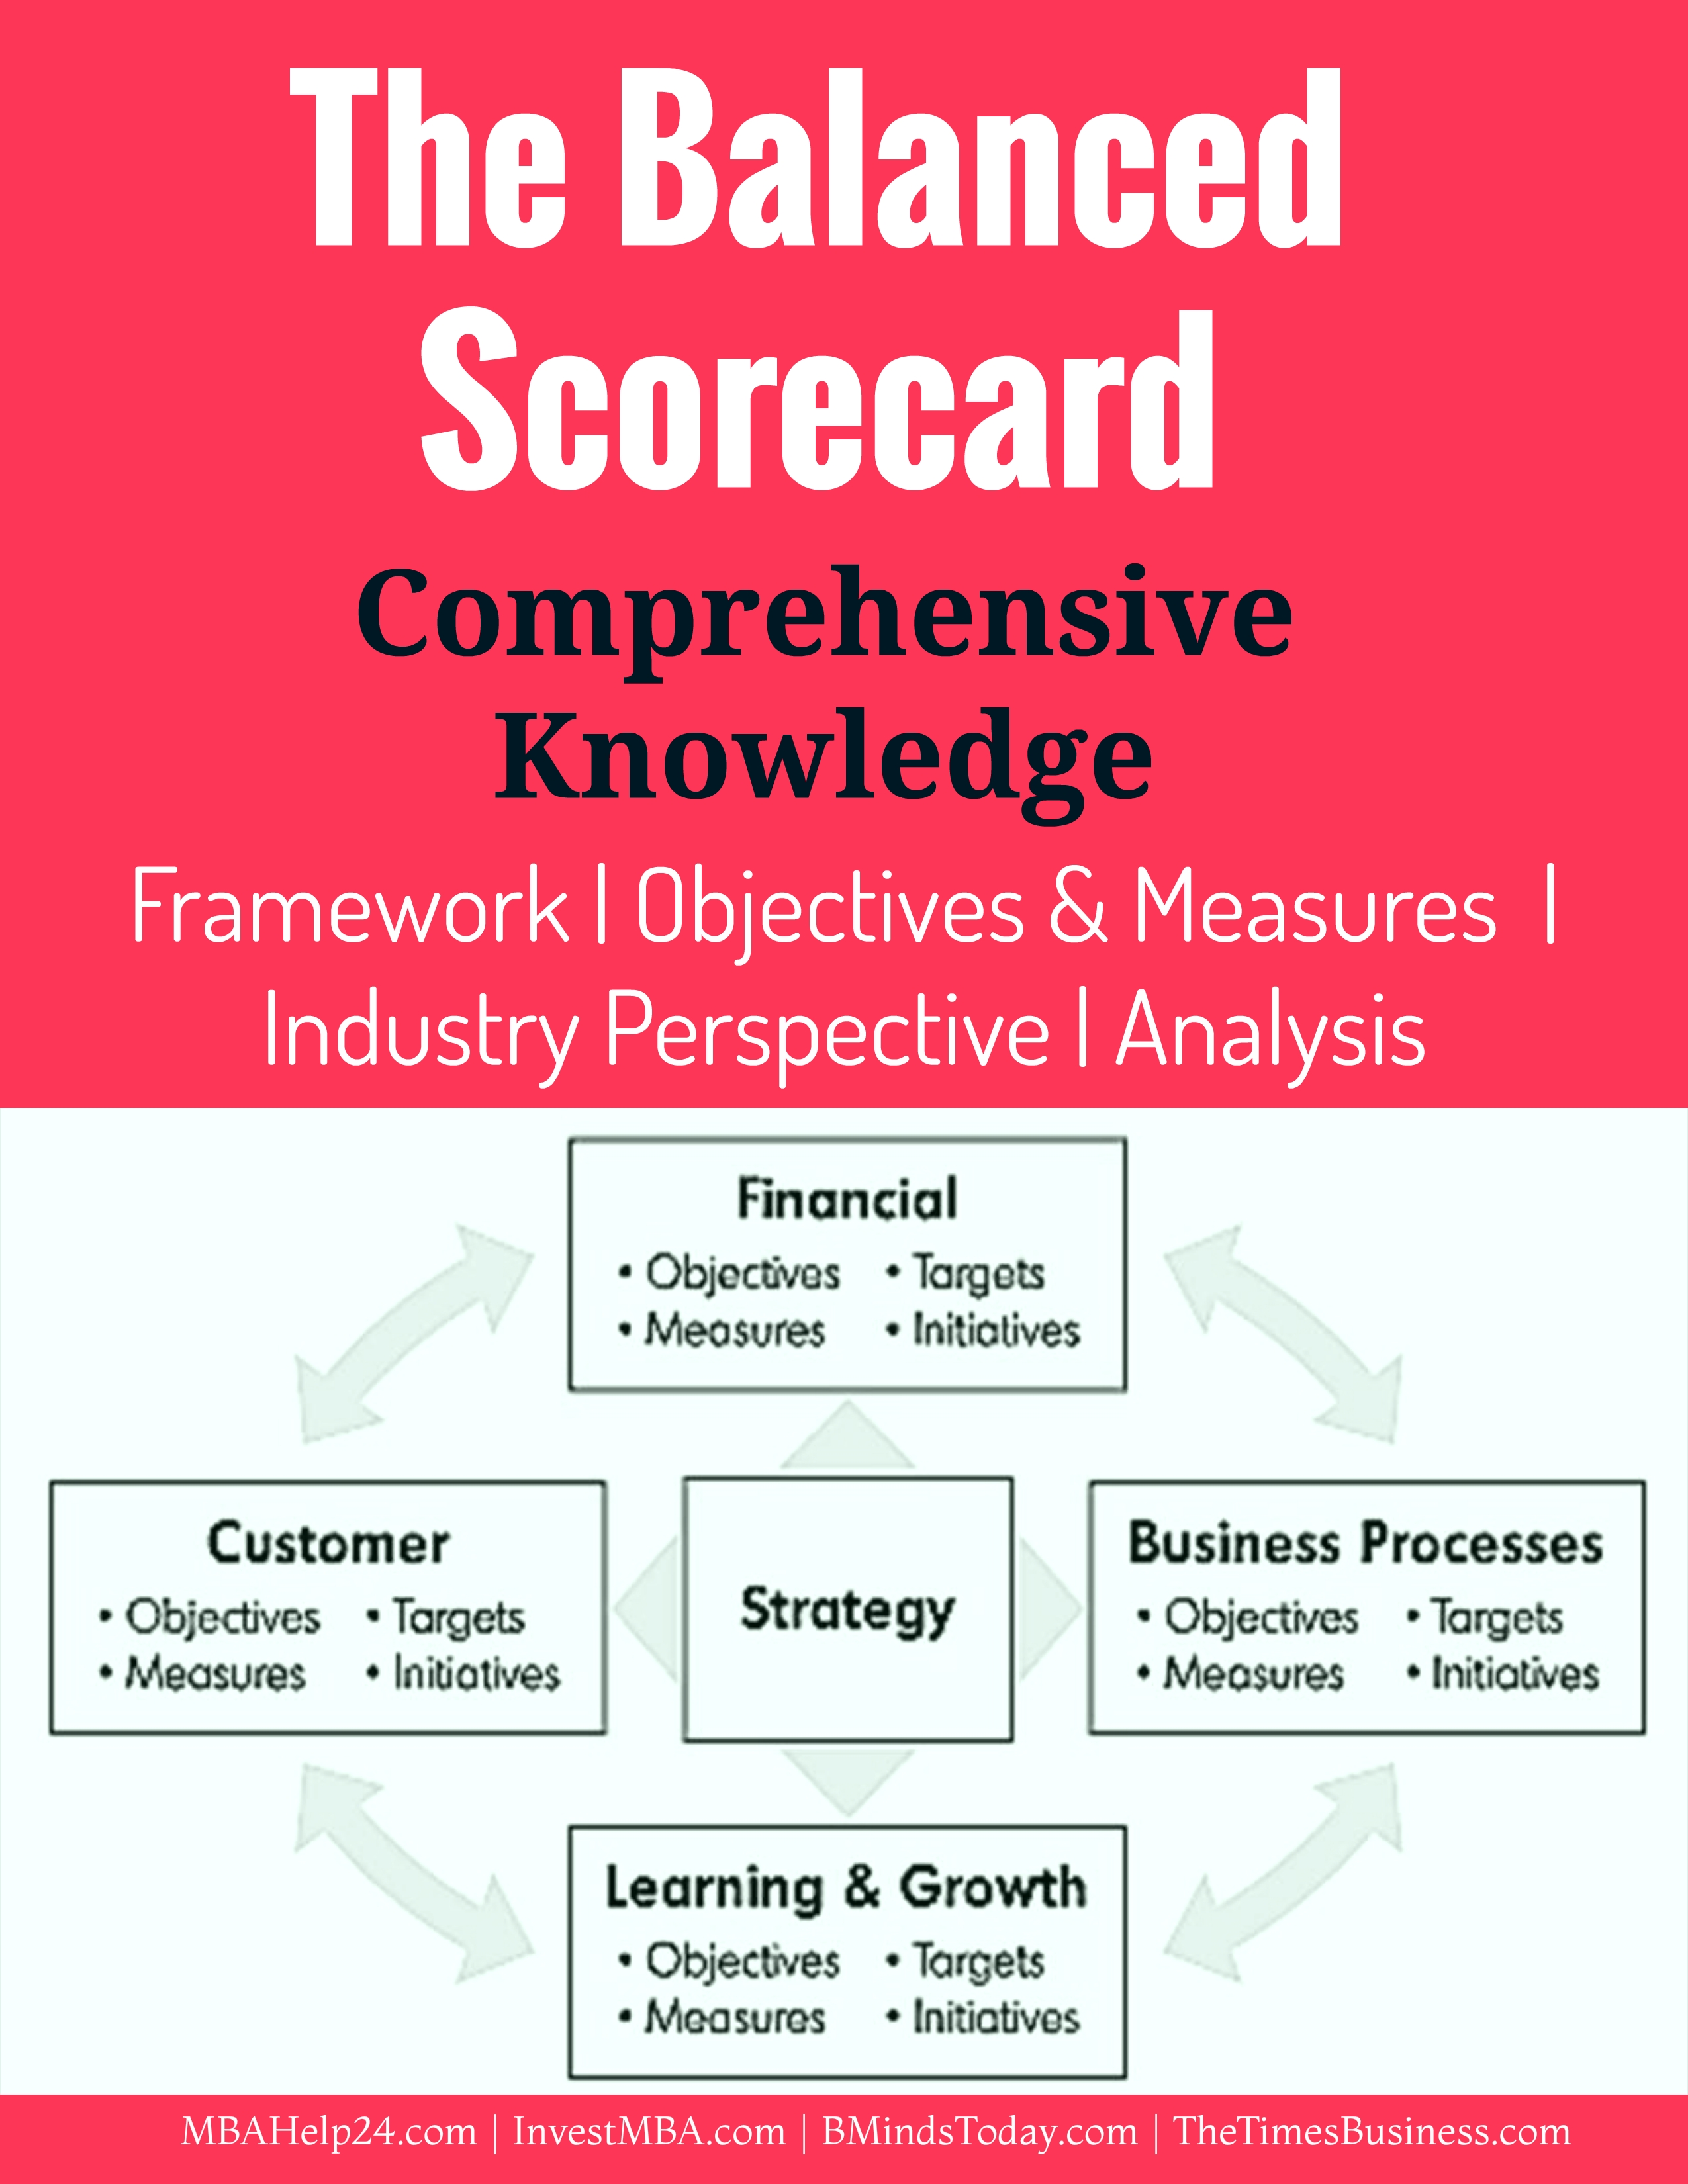 Balanced Scorecard Comprehensive Knowledge Measures Perspectives